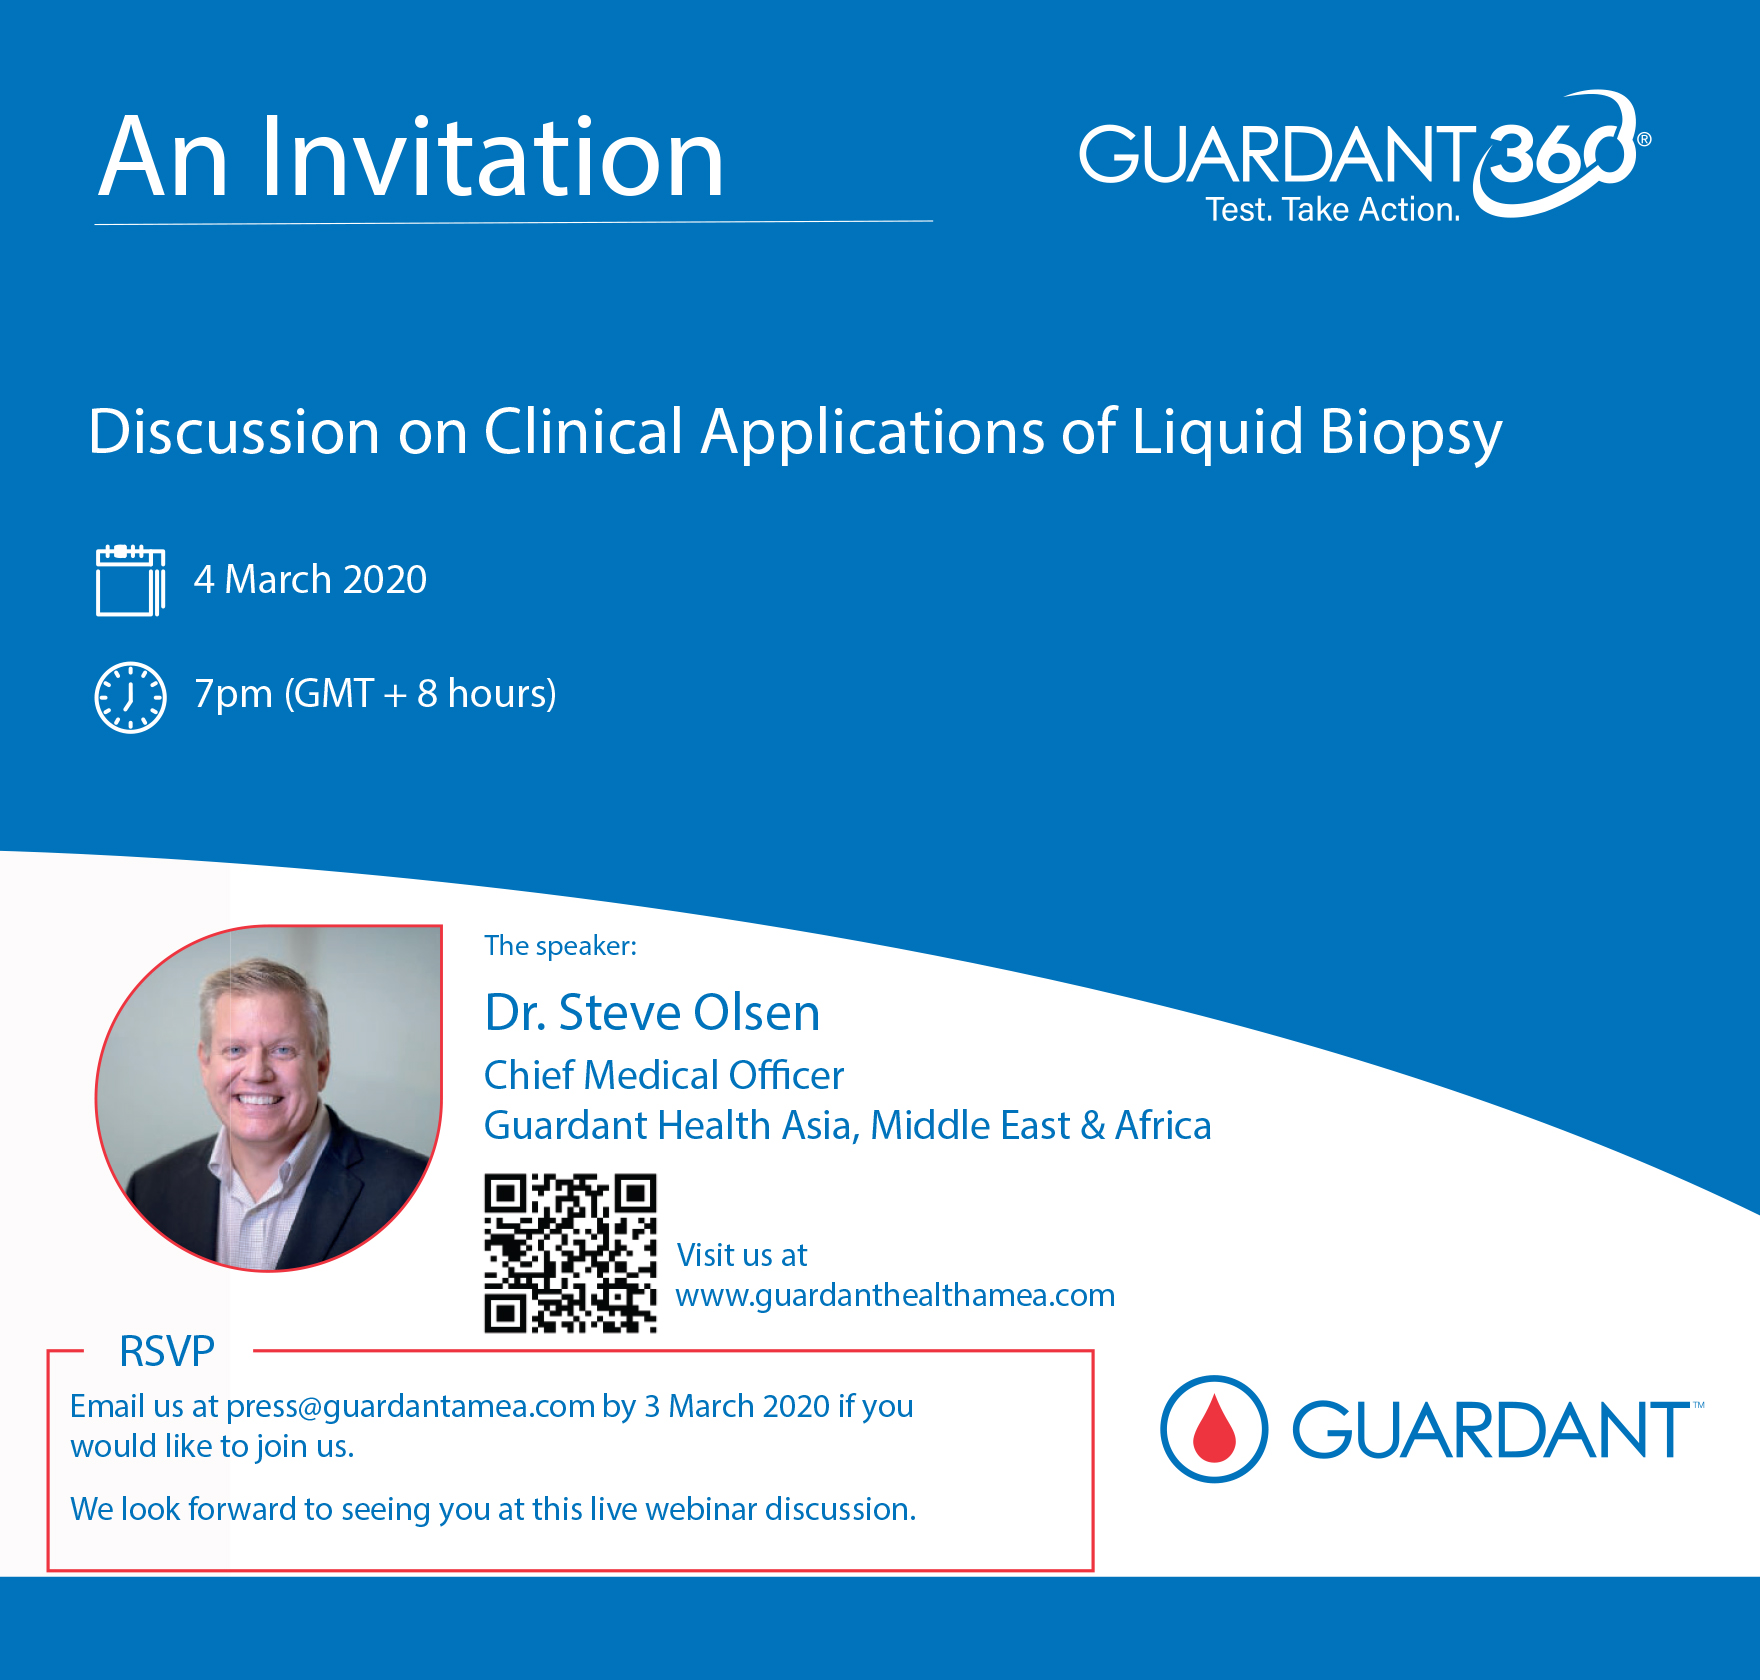 Join us on 4 March 2020 for a zoom webinar discussion with Dr Steve Olsen on clinical applications of liquid biopsy.